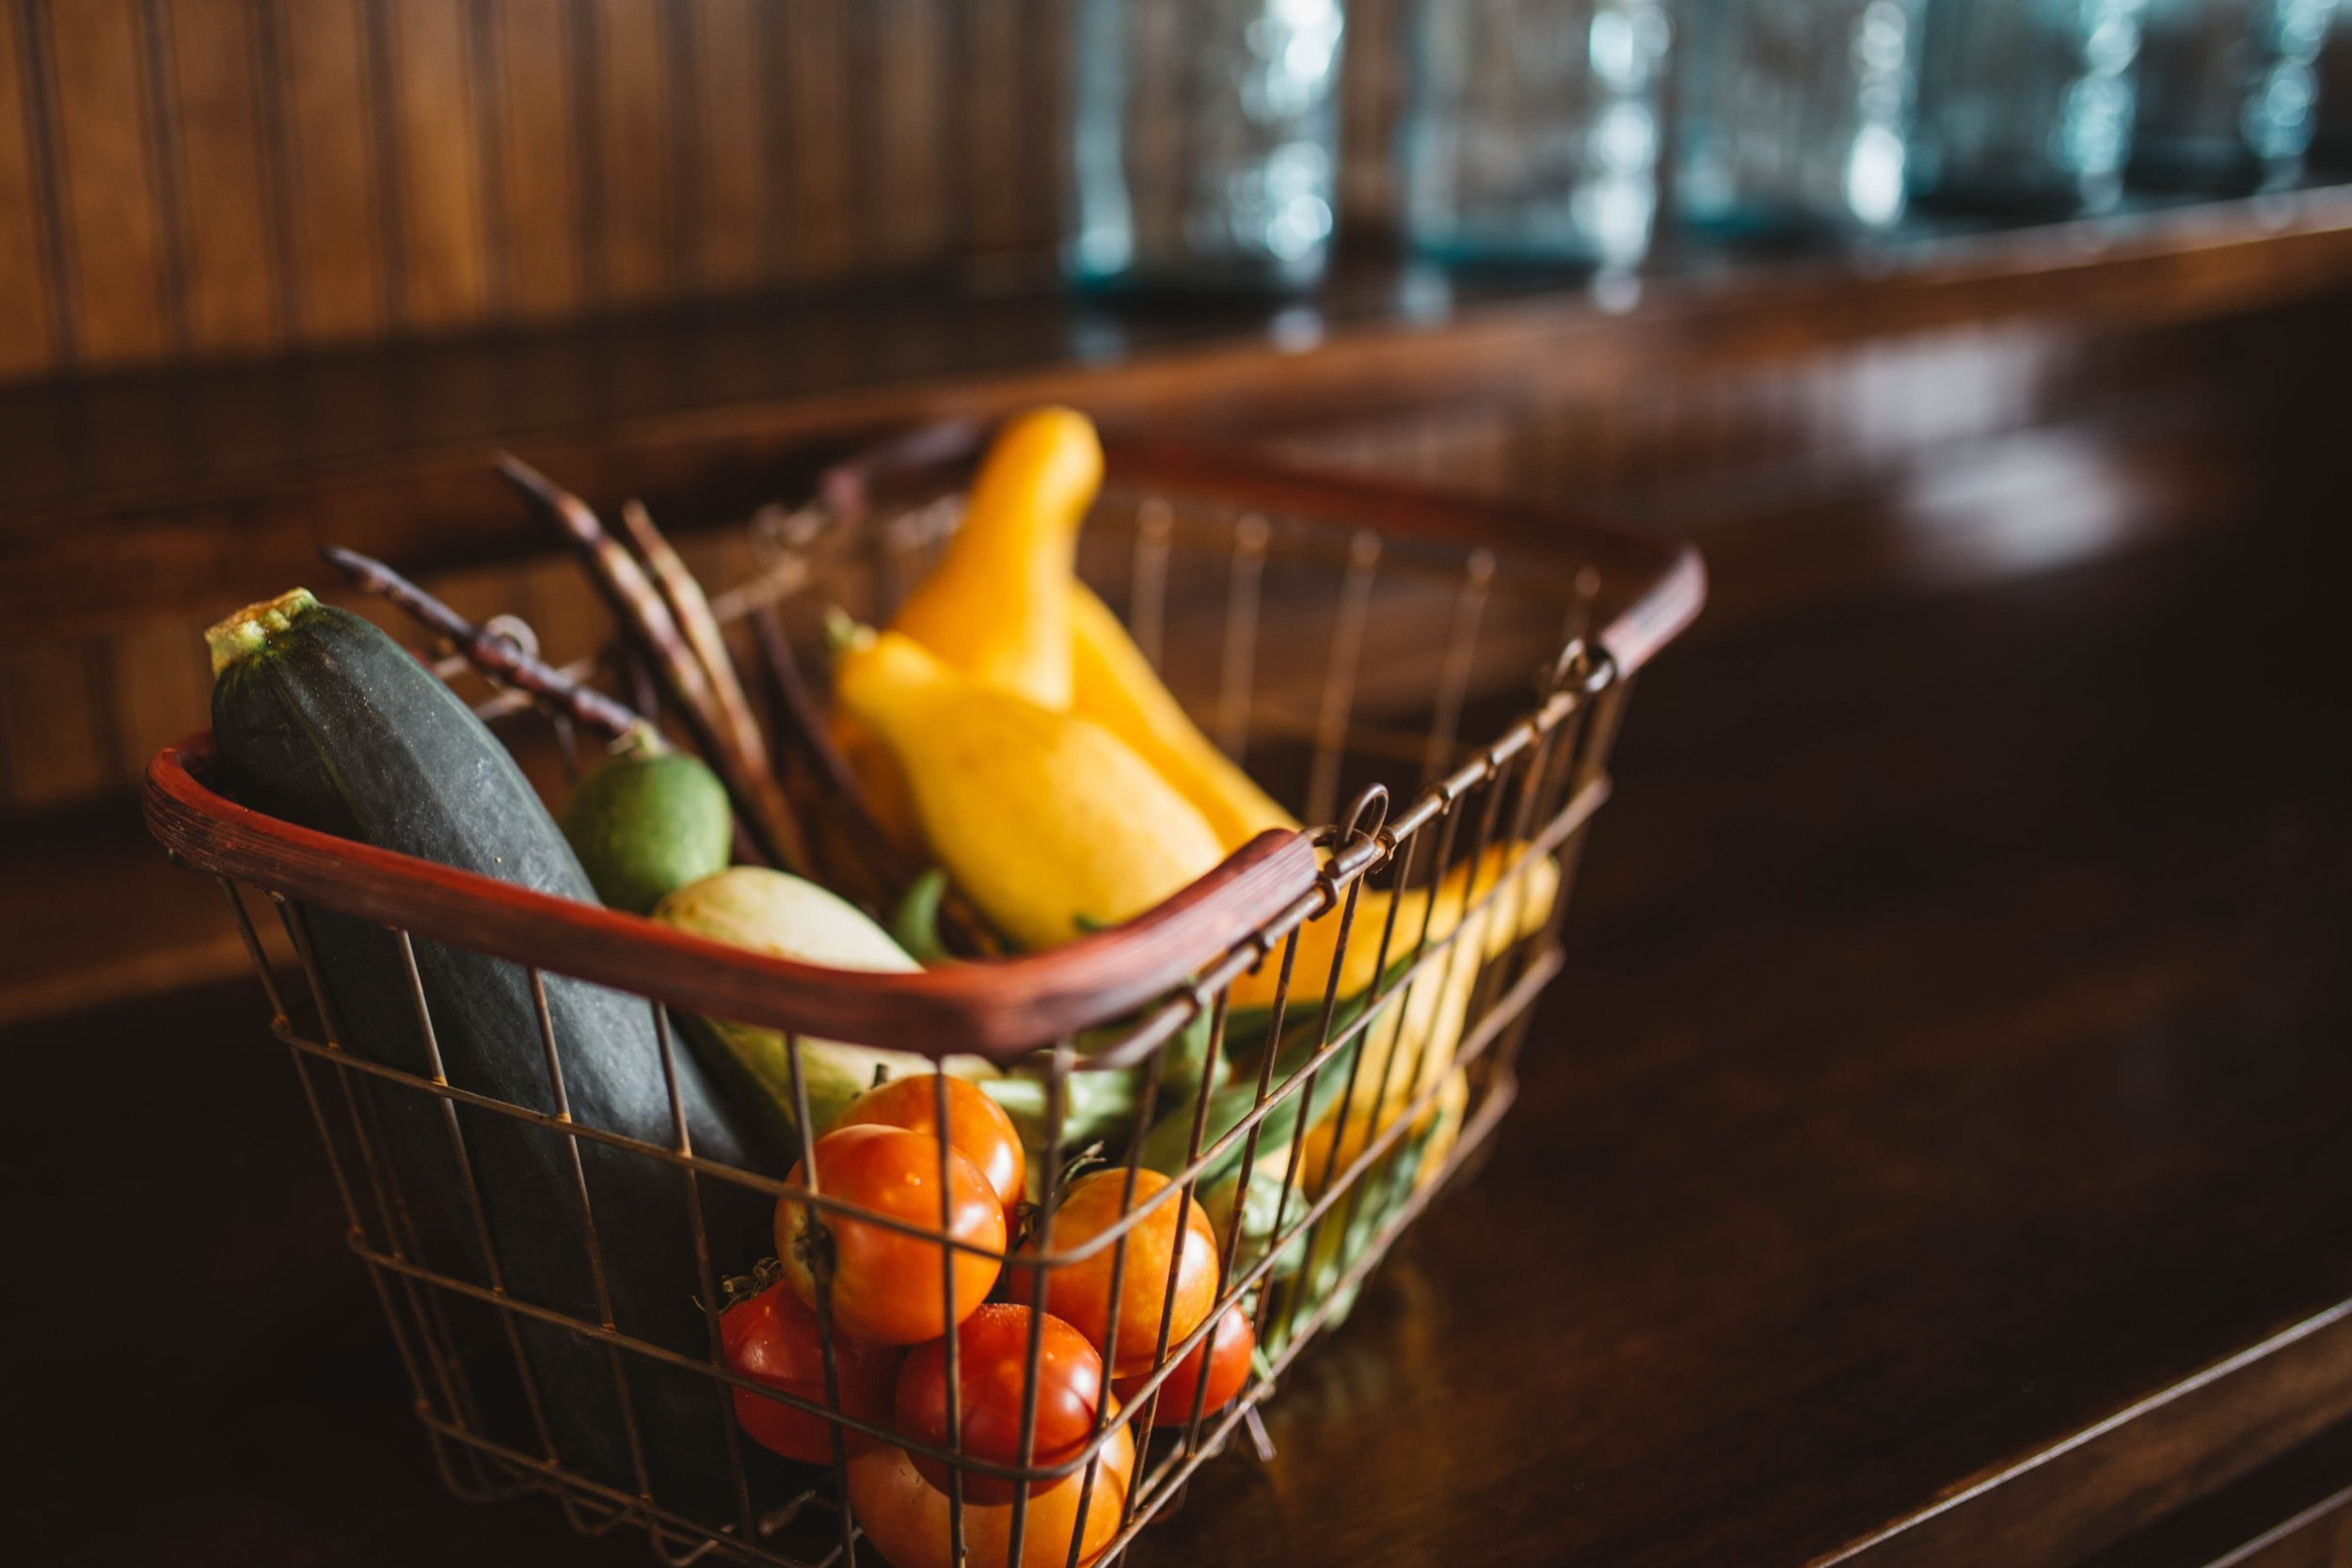 Pantry Makeover - $150 -- Learn how to stock your pantry with the essential items for creating healthy meals. Get tips on meal planning, shopping, and prep in the kitchen. Create a shopping list, learn how to store food better (including fridge organization), and stay on top of your inventory.